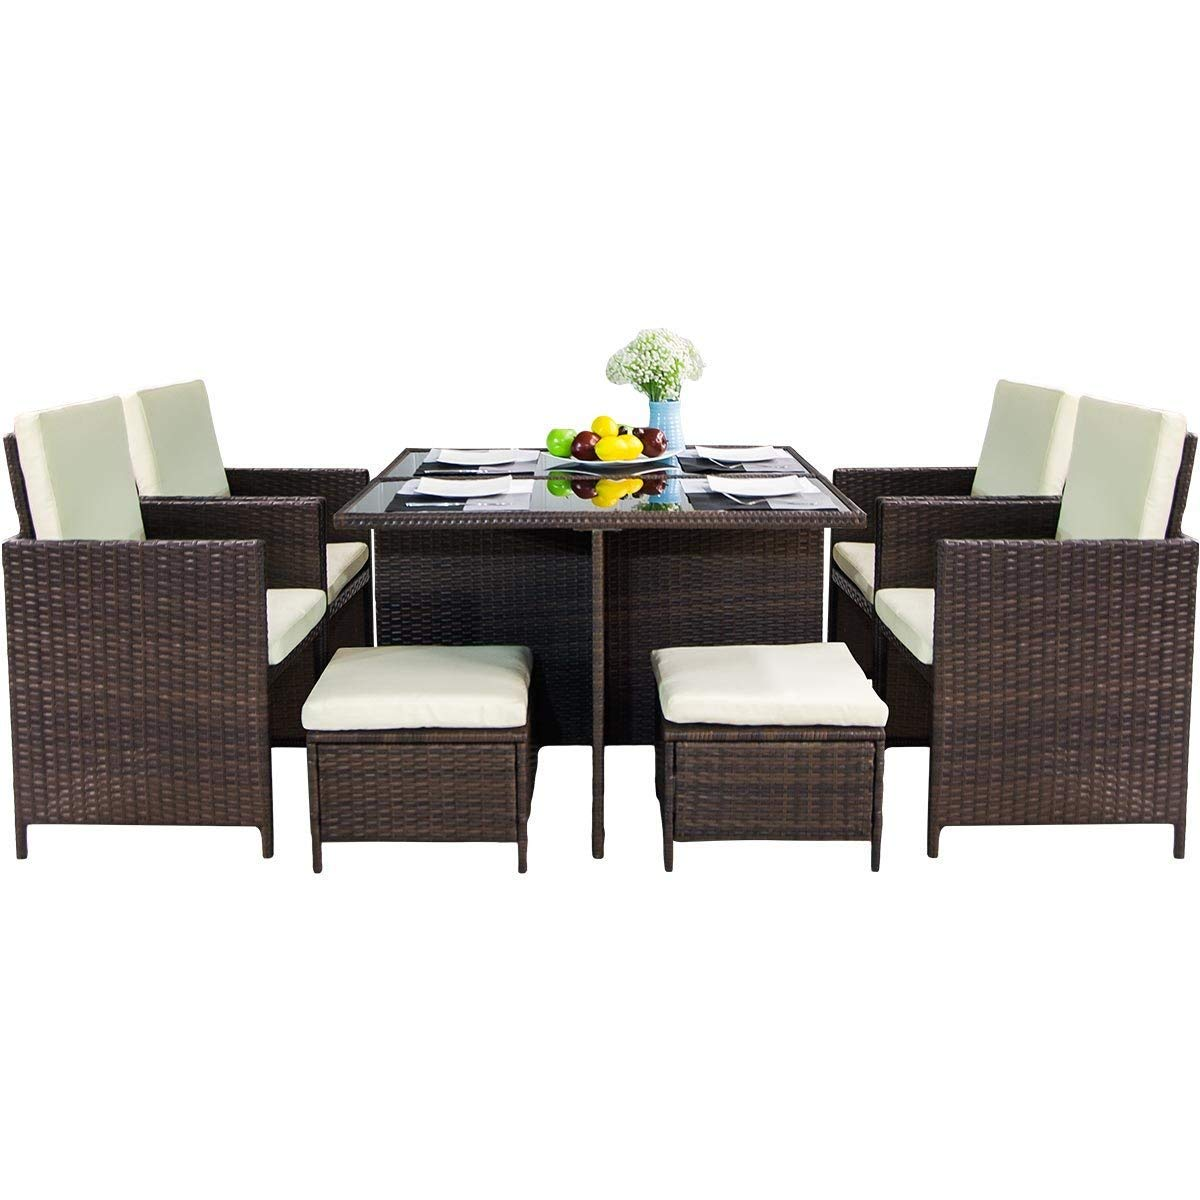 Amazon com leisure zone 9 piece outdoor furniture patio dining table set pe rattan wicker chairs conversation set with glass table cushions brown